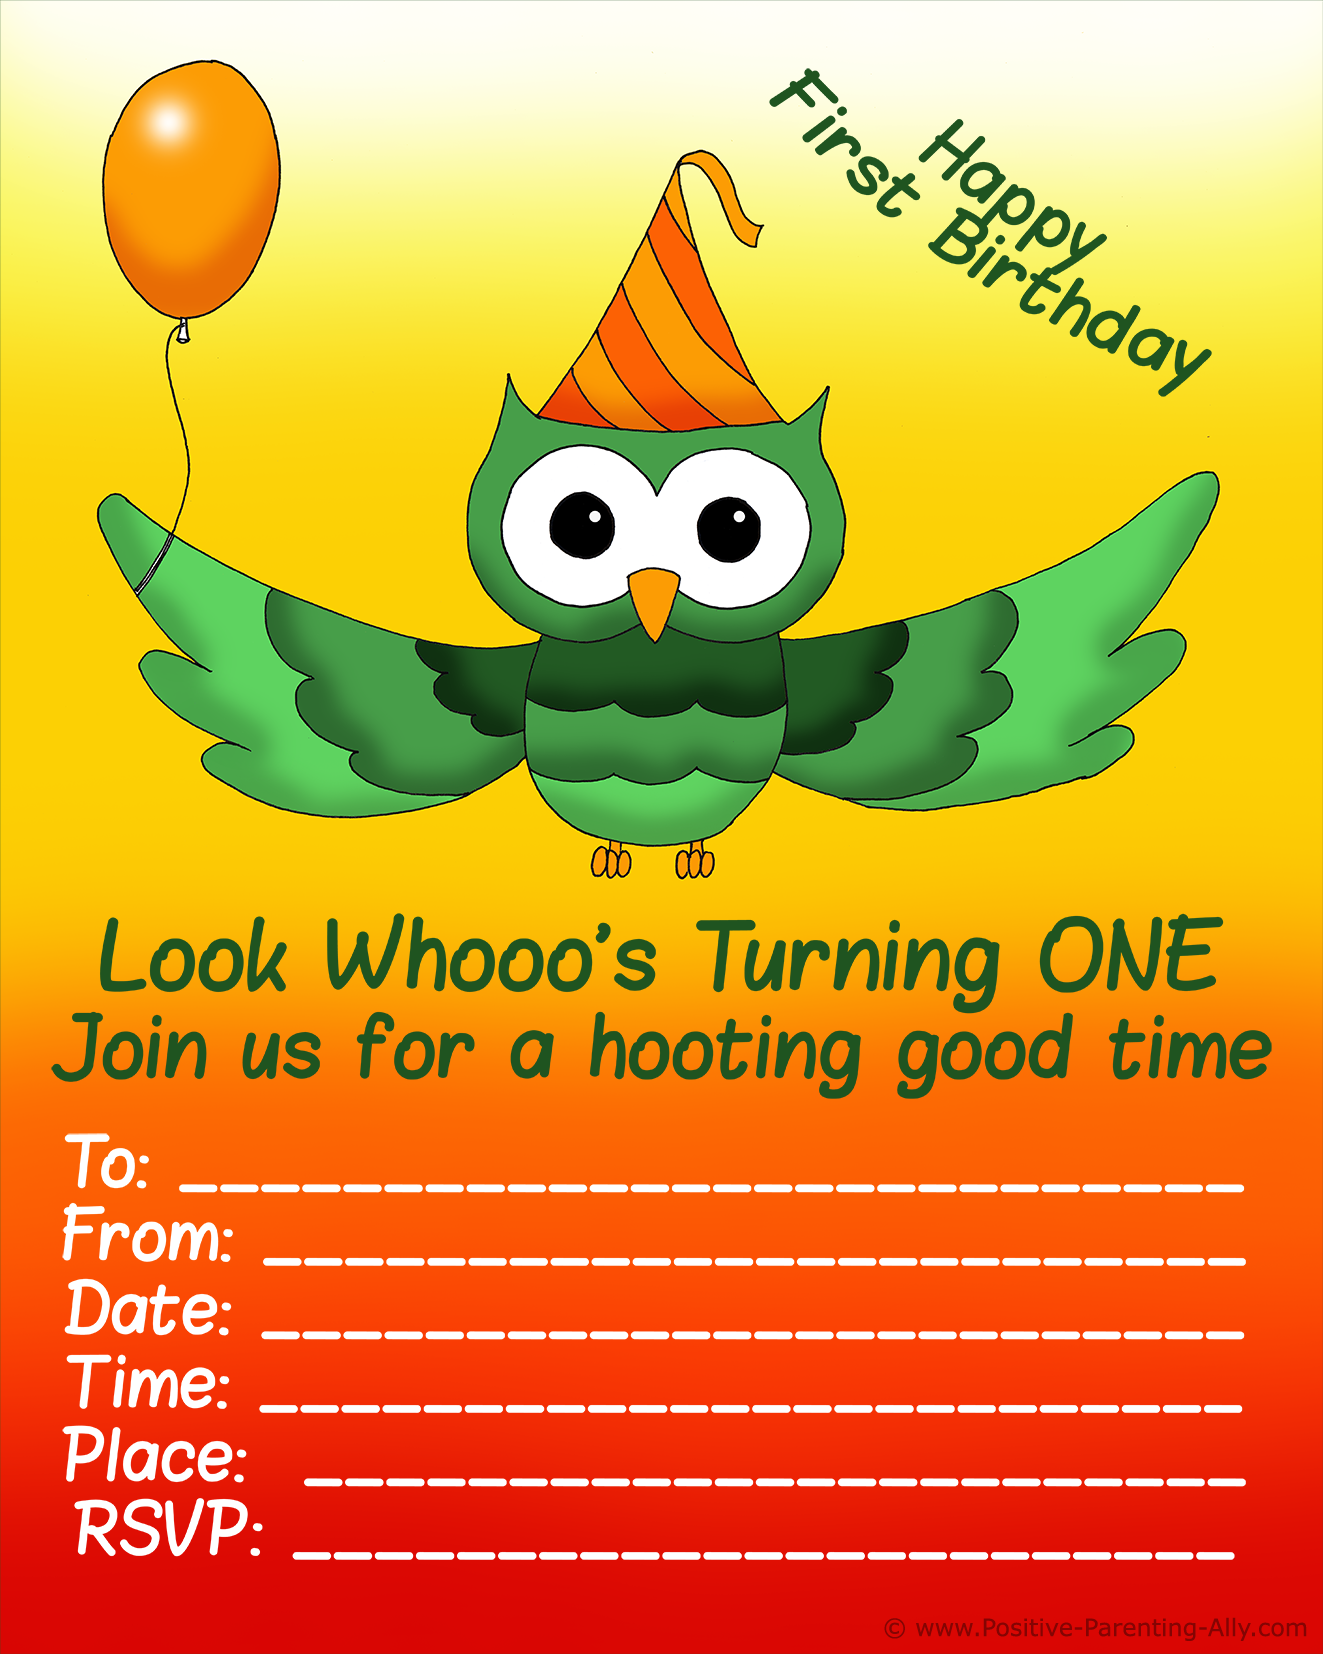 Fun baby birthday party invitation with hooting owl and balloon.